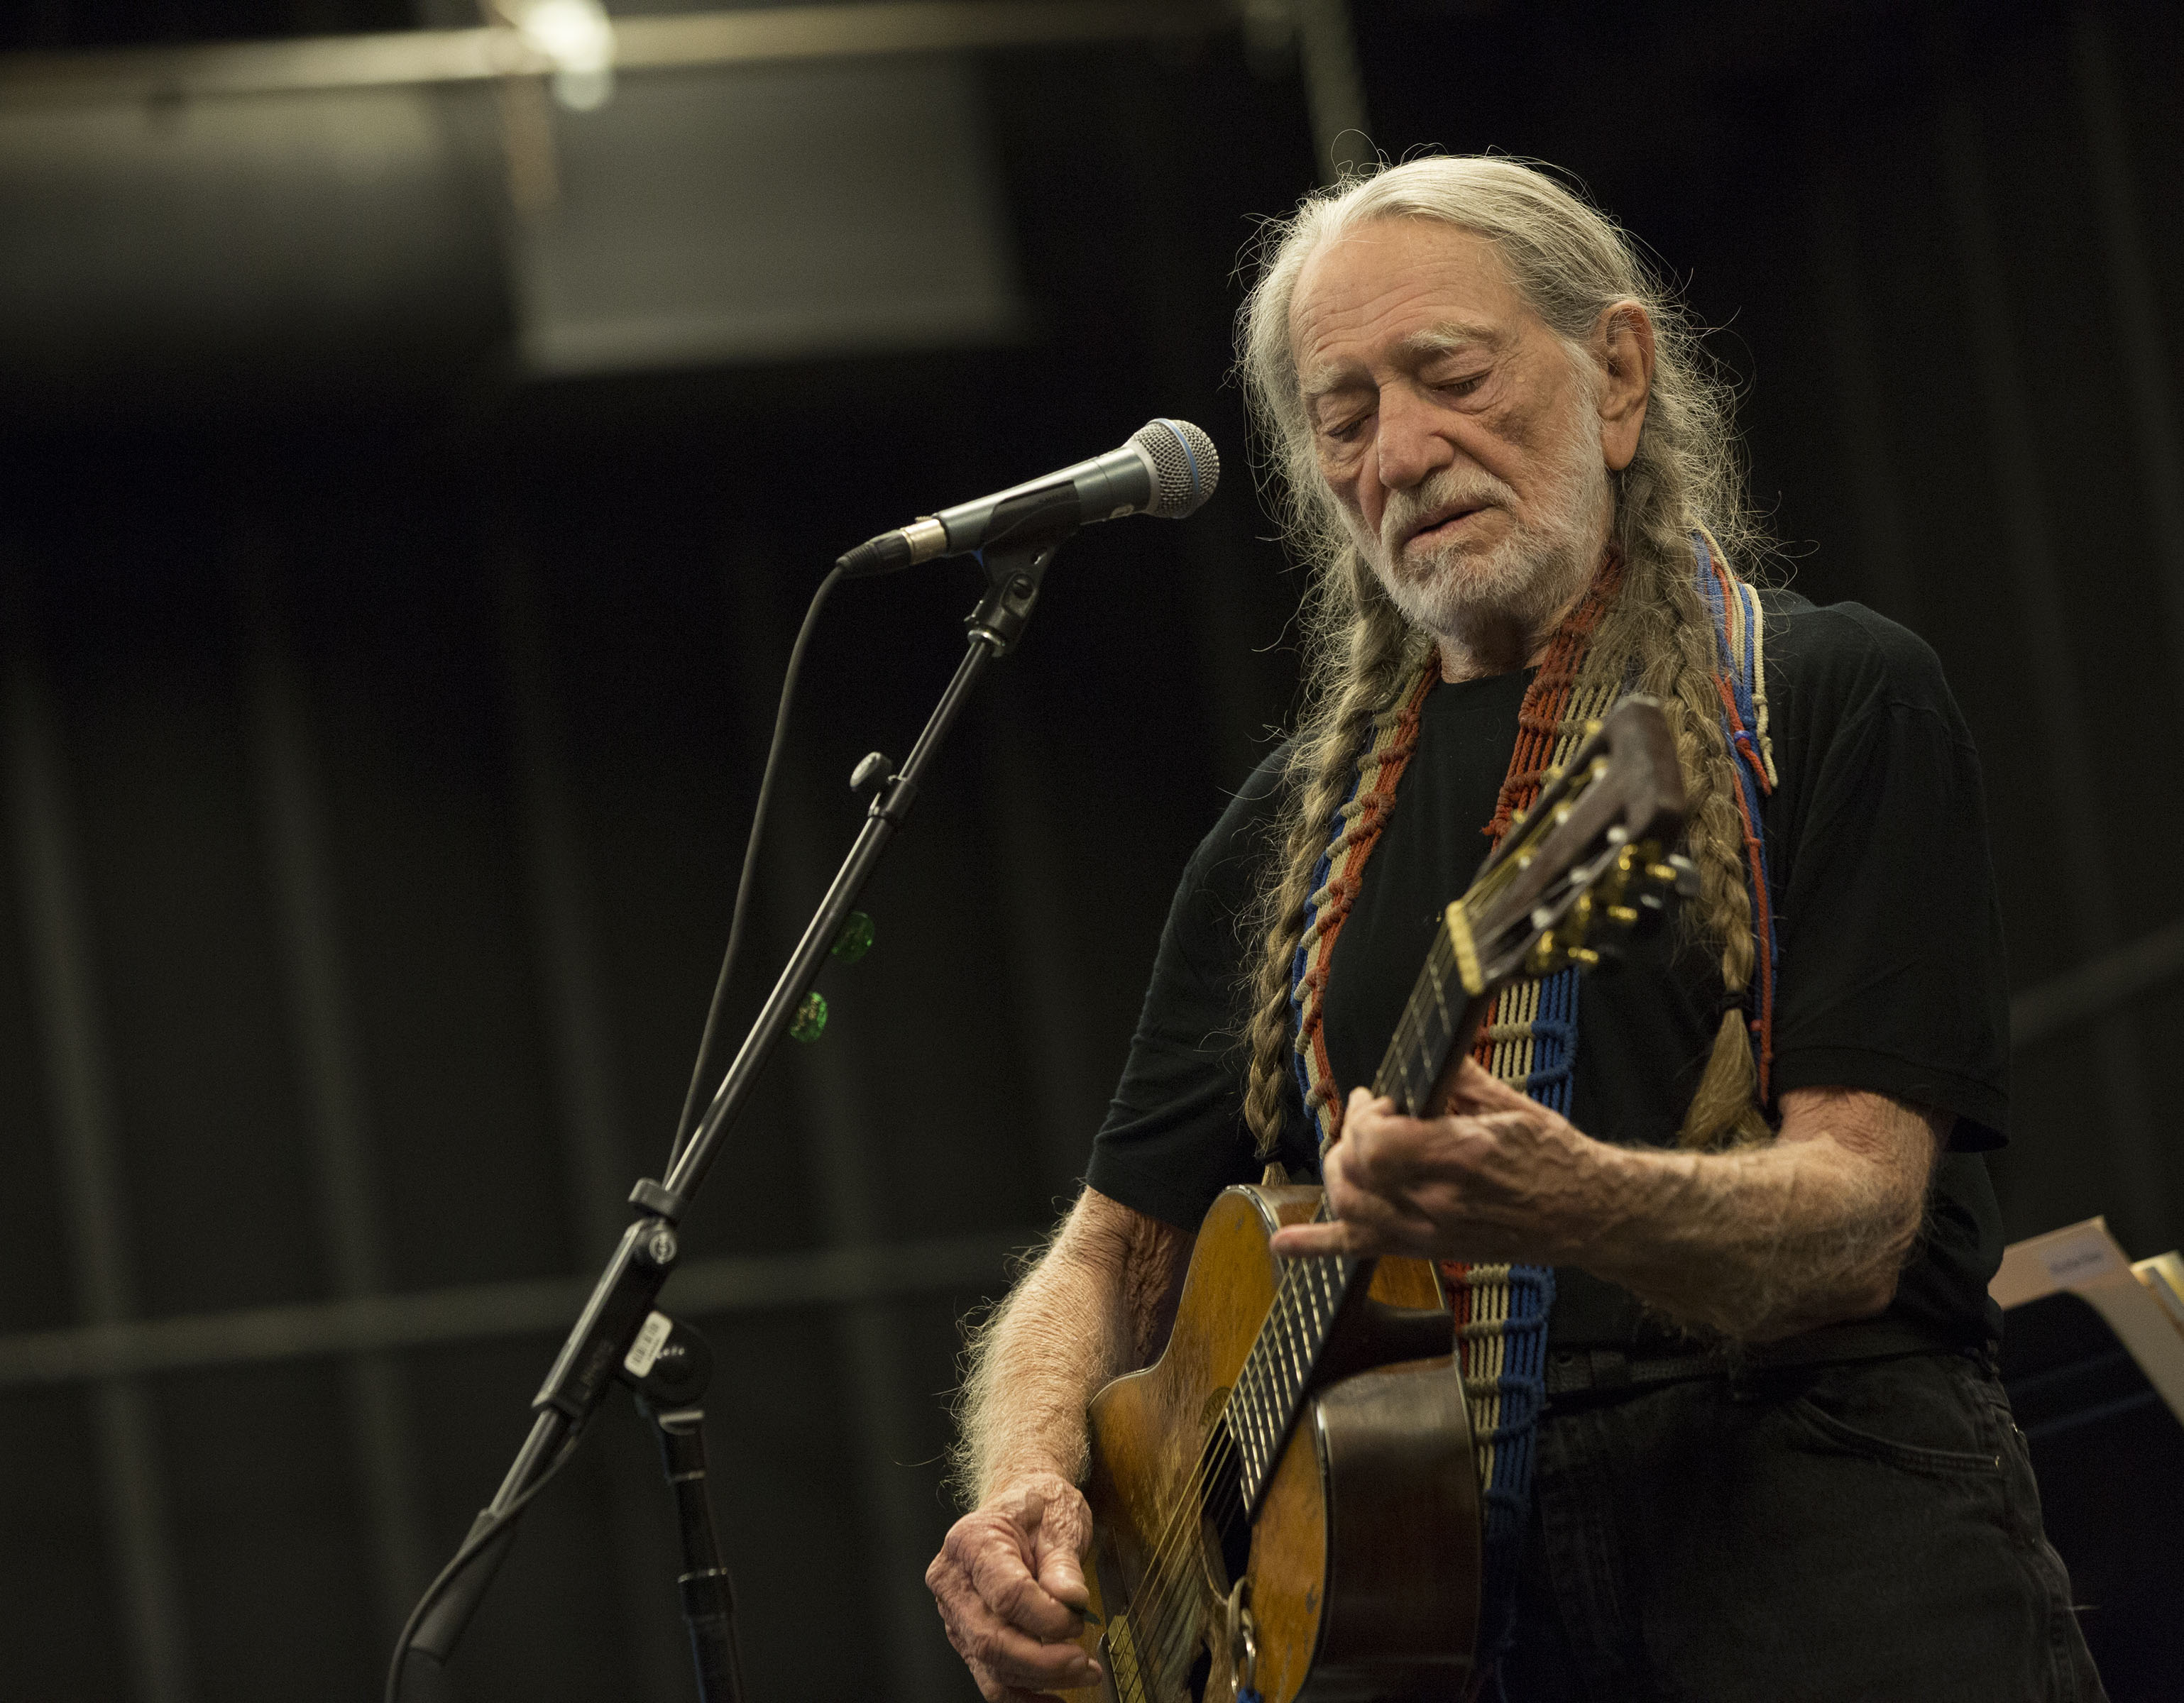 Willie Nelson walks off stage, angers concert goers